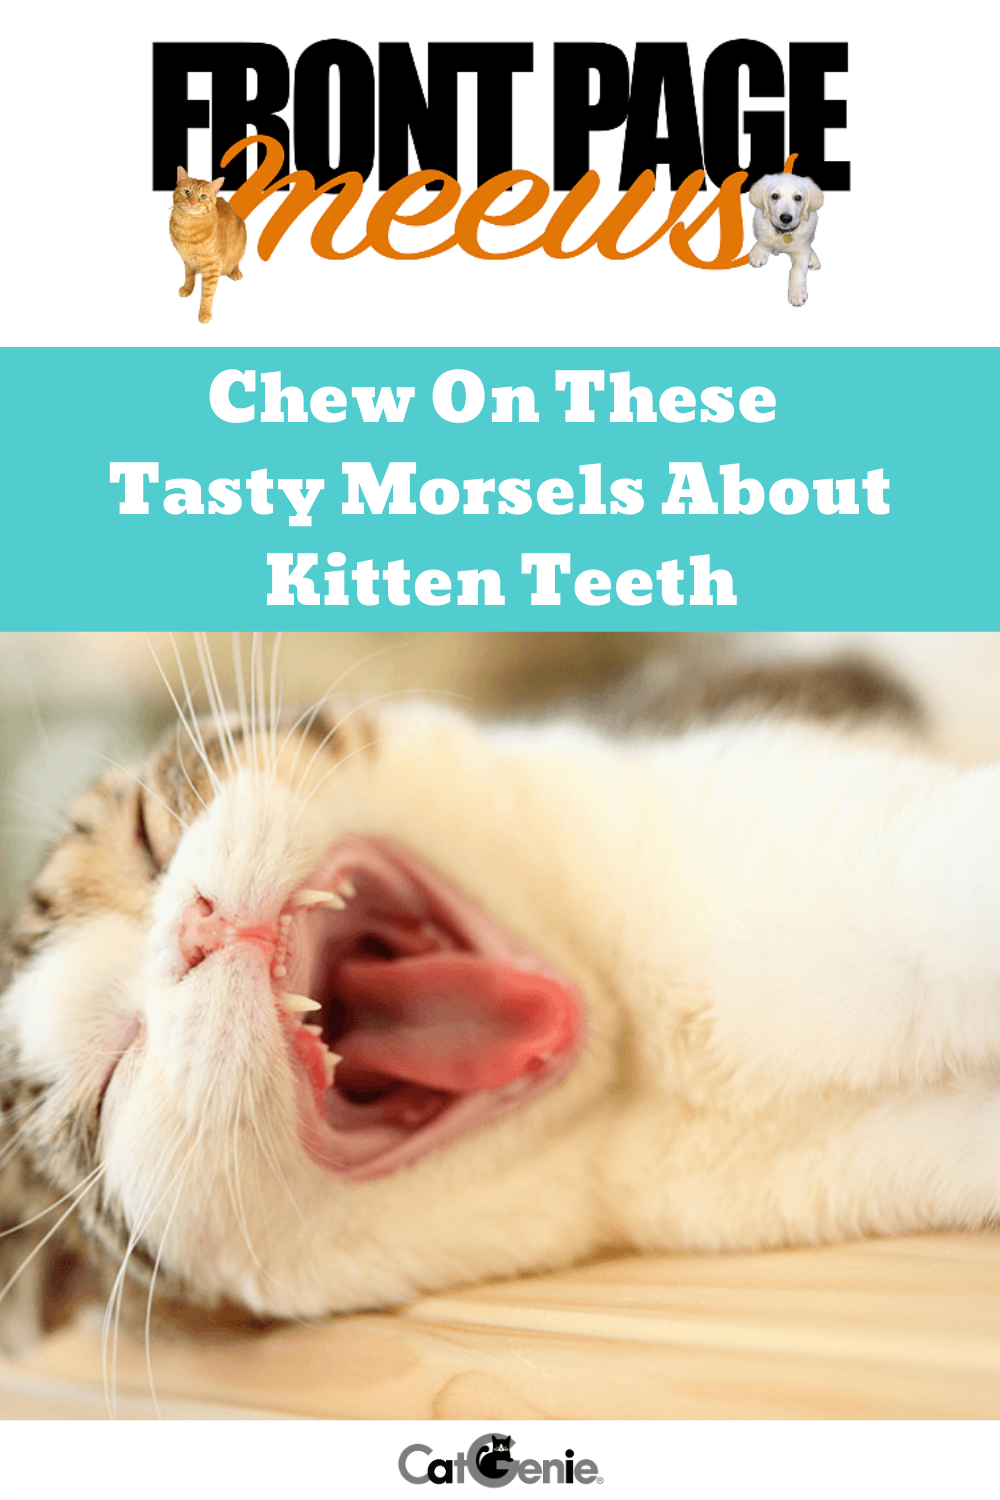 A Kitten S Baby Teeth Serve An Important Function Staying In Tune With Your Kitten S Baby Teeth And Their Transiti Raising Kittens Cat Parenting Kittens